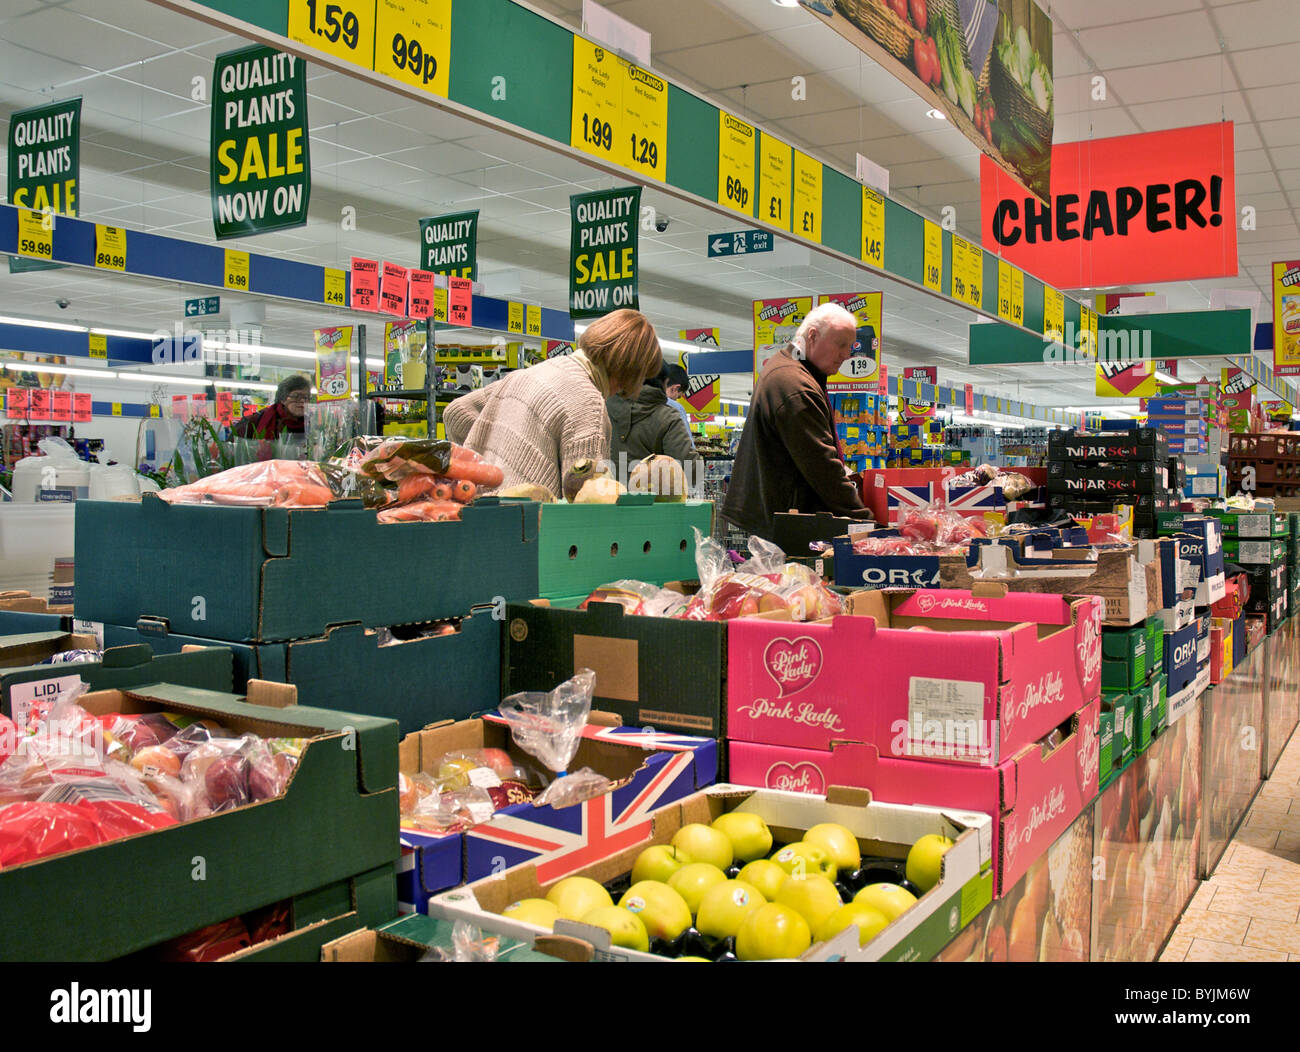 Interior of large store showing the wide range of merchandise available. This is inside a Lidls store in the fresh - Stock Image